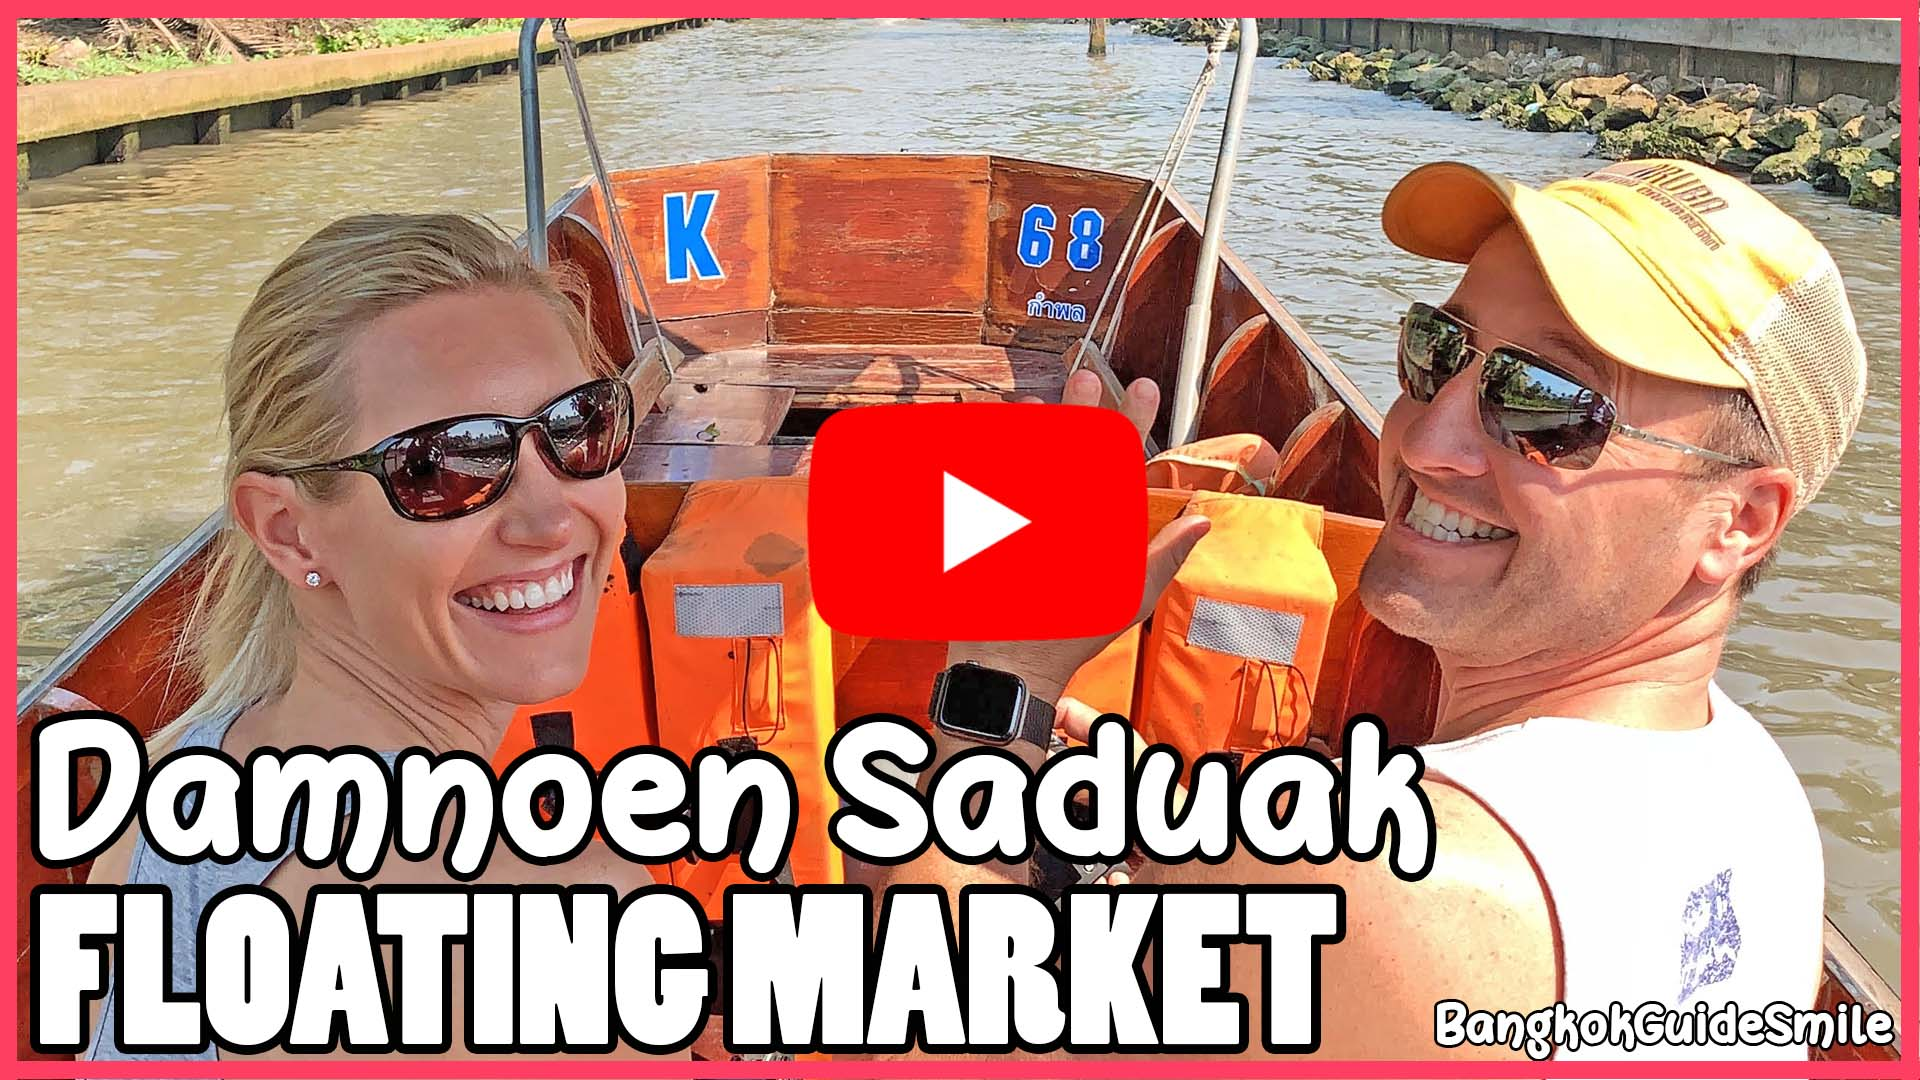 Bangkok-Guide-Smile-Private-Tour-Floating-Market-Damnoen-Saduak-02.jpg